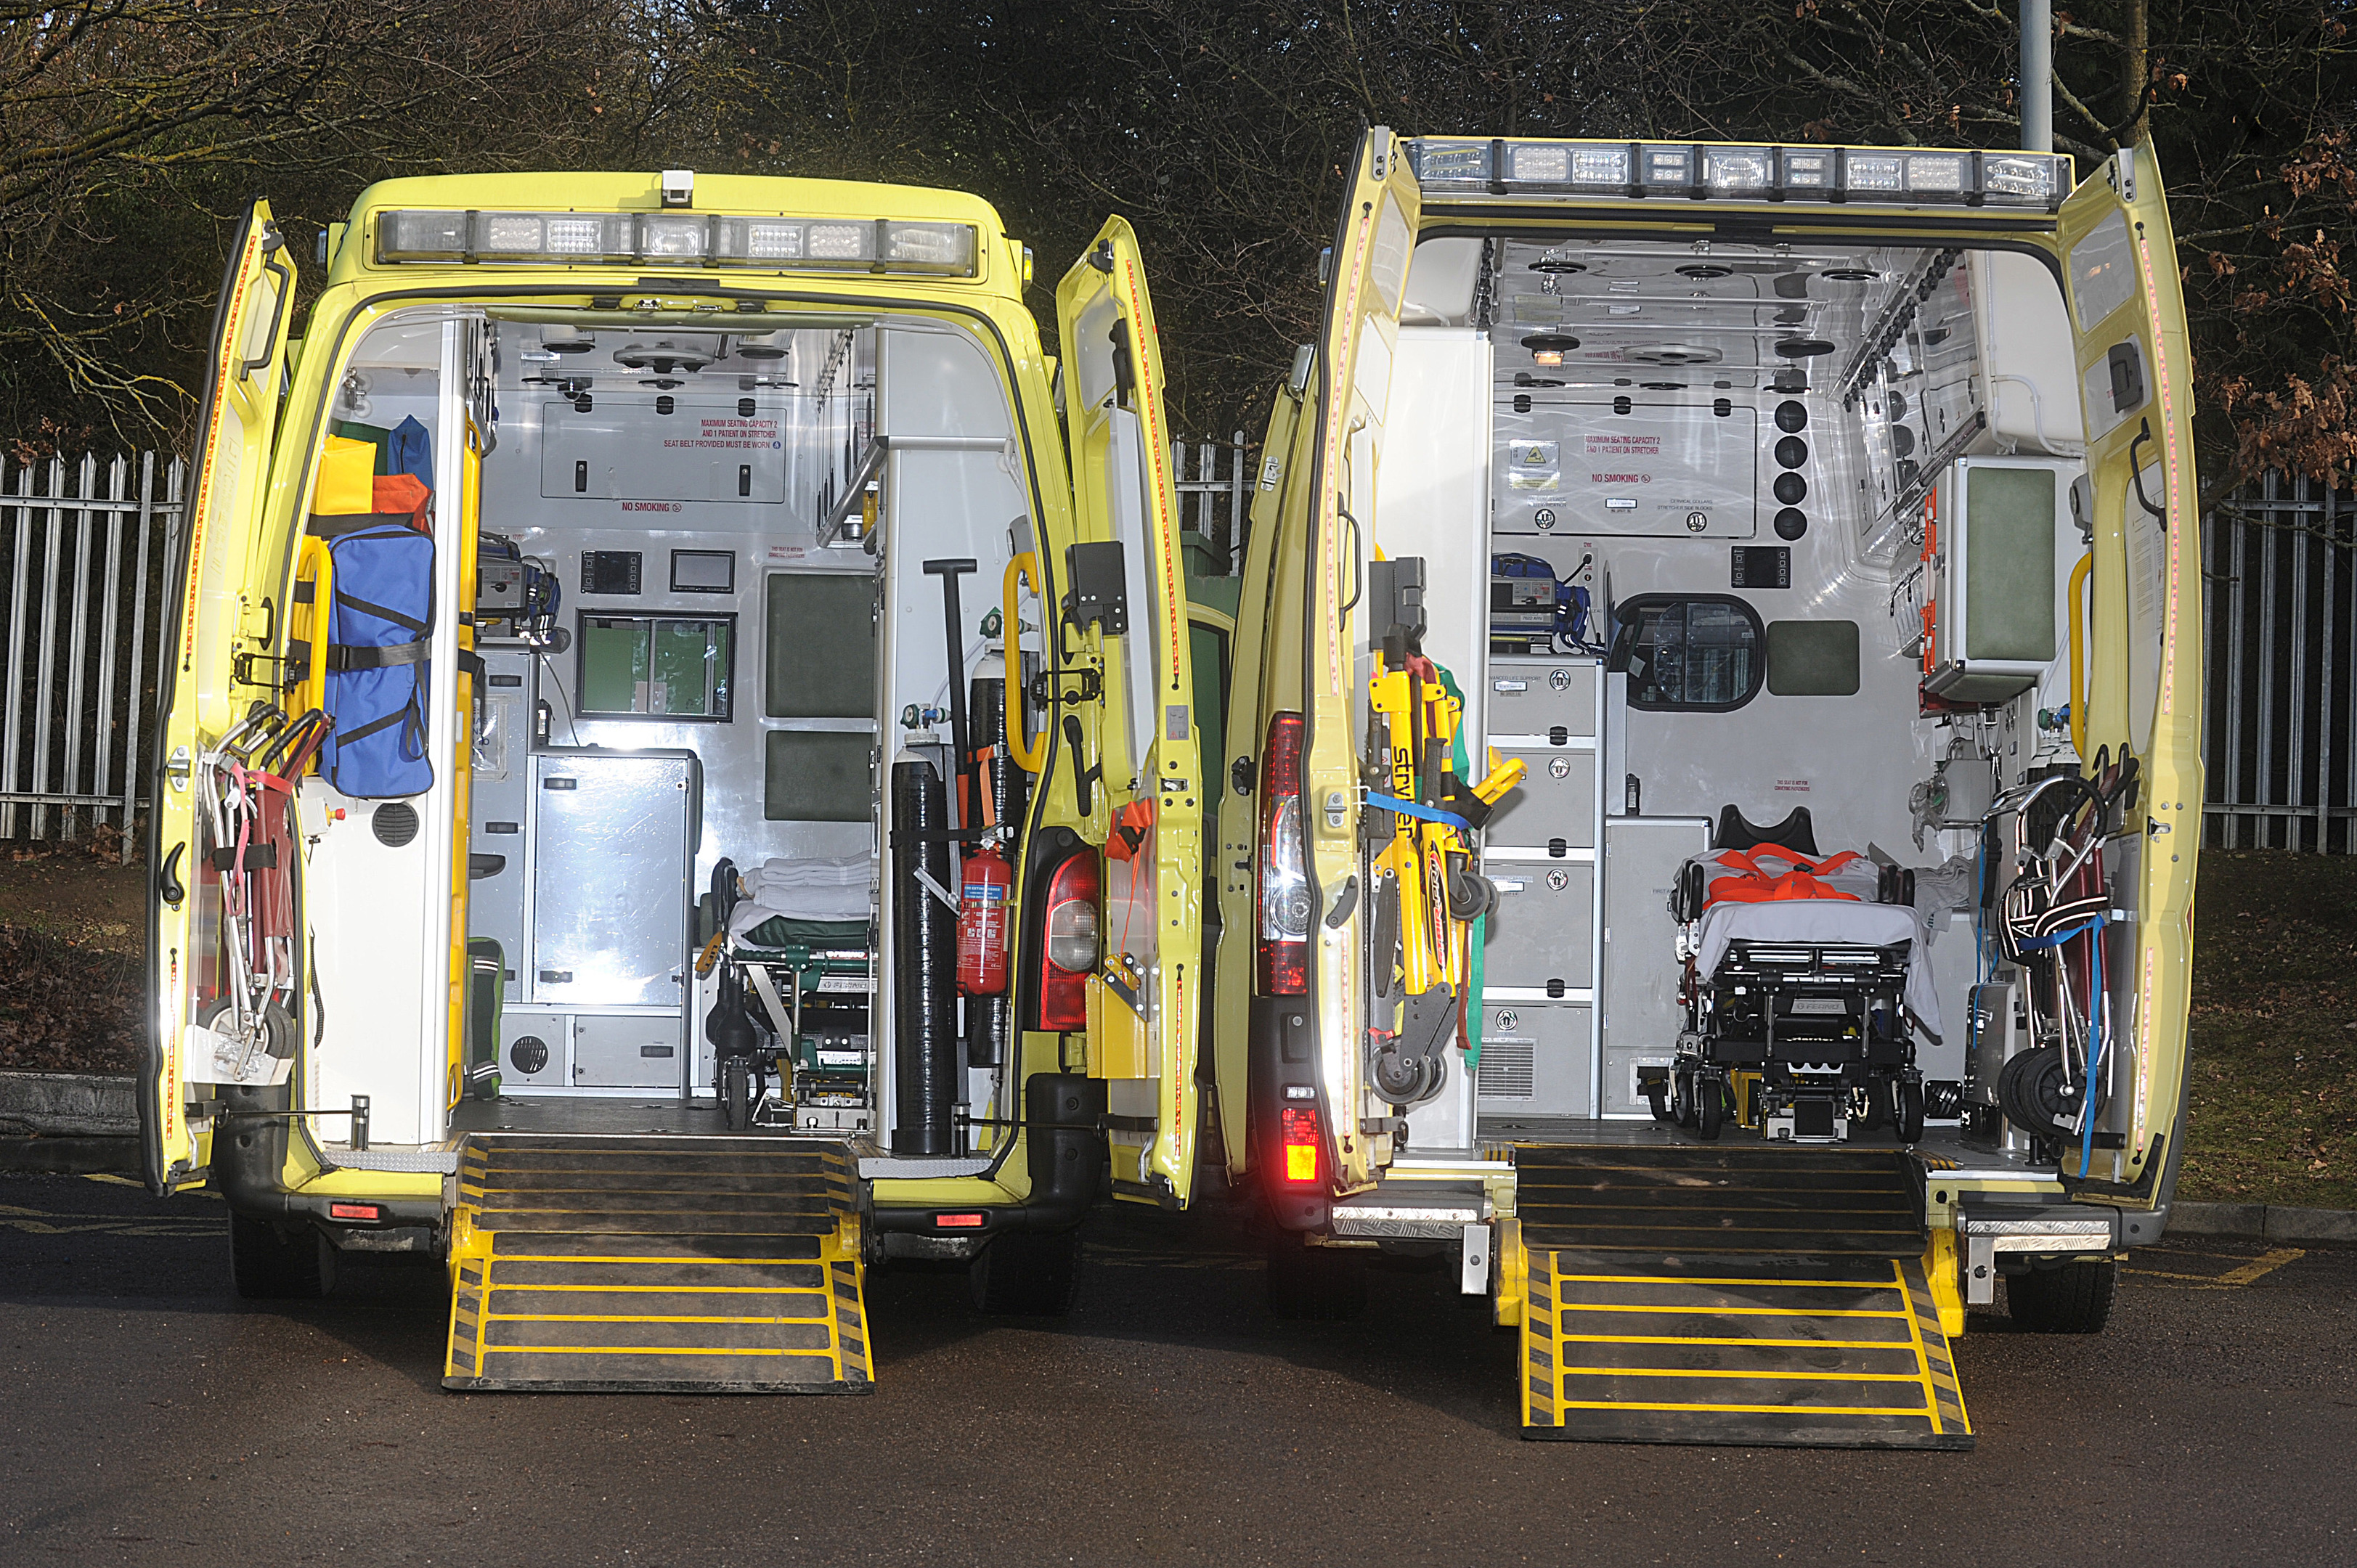 Obesity is forcing ambulance bosses to revamp their fleets to cope fixing double-width stretchers capable of carrying 40 stone patients (ADAM HARNETT / CATERS)